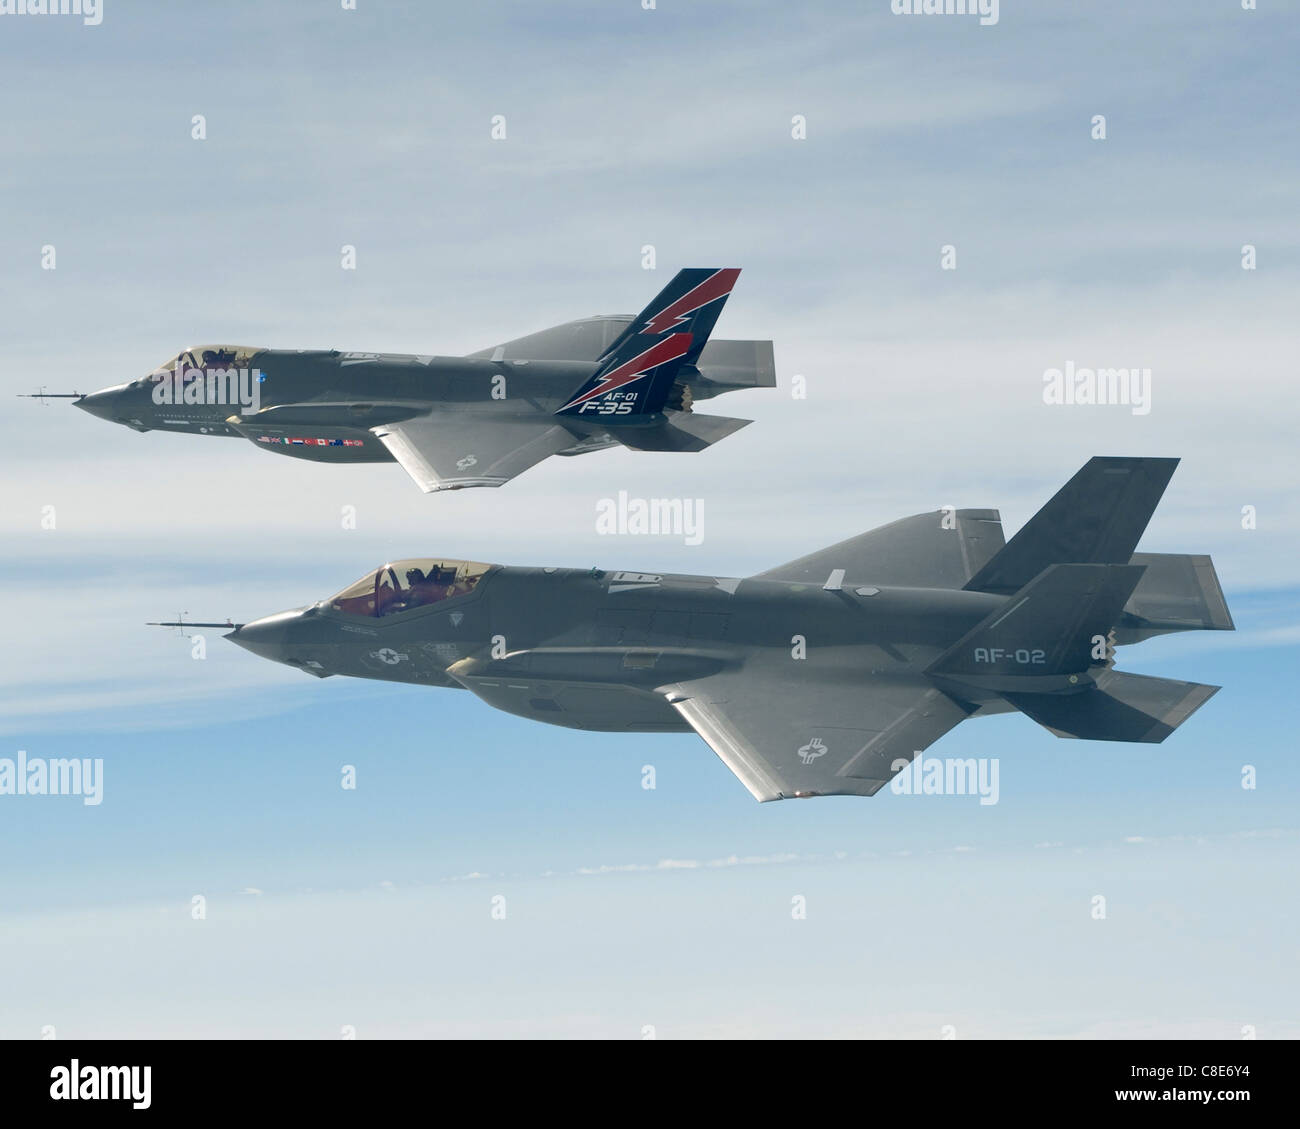 F-35A Lightning II joint strike fighters - Stock Image